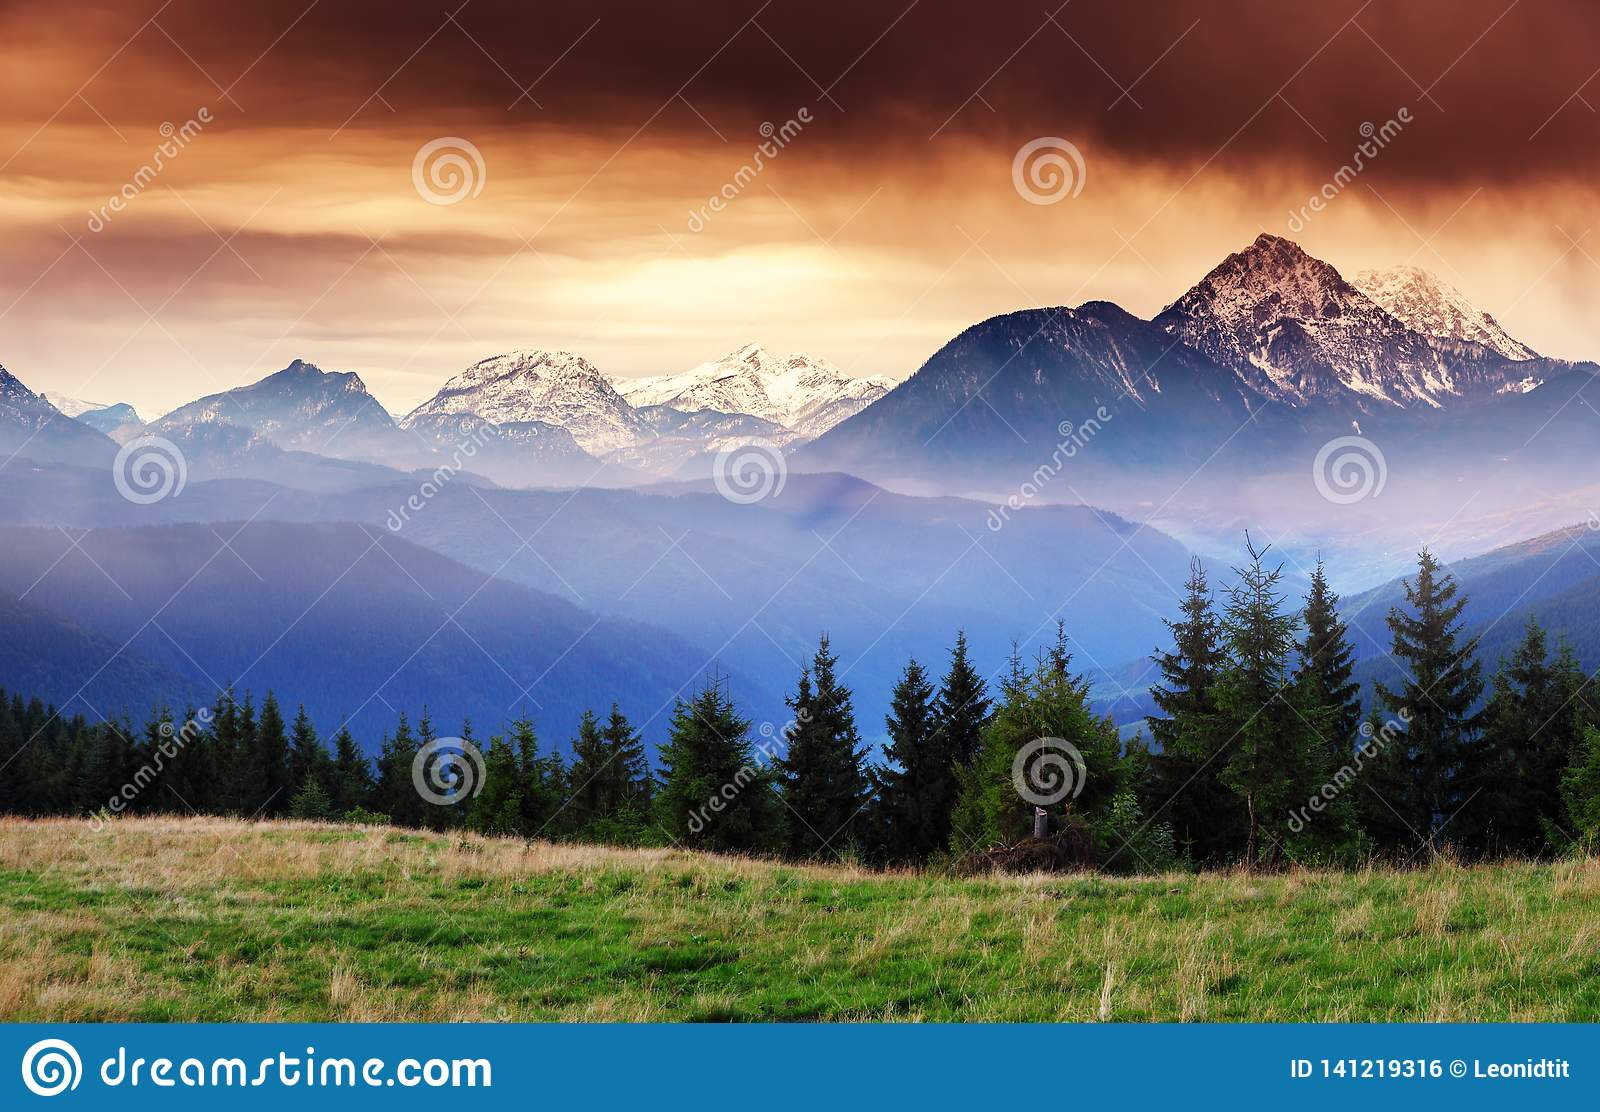 Fantastic Views Of The Mountain Range With Snow Peaks